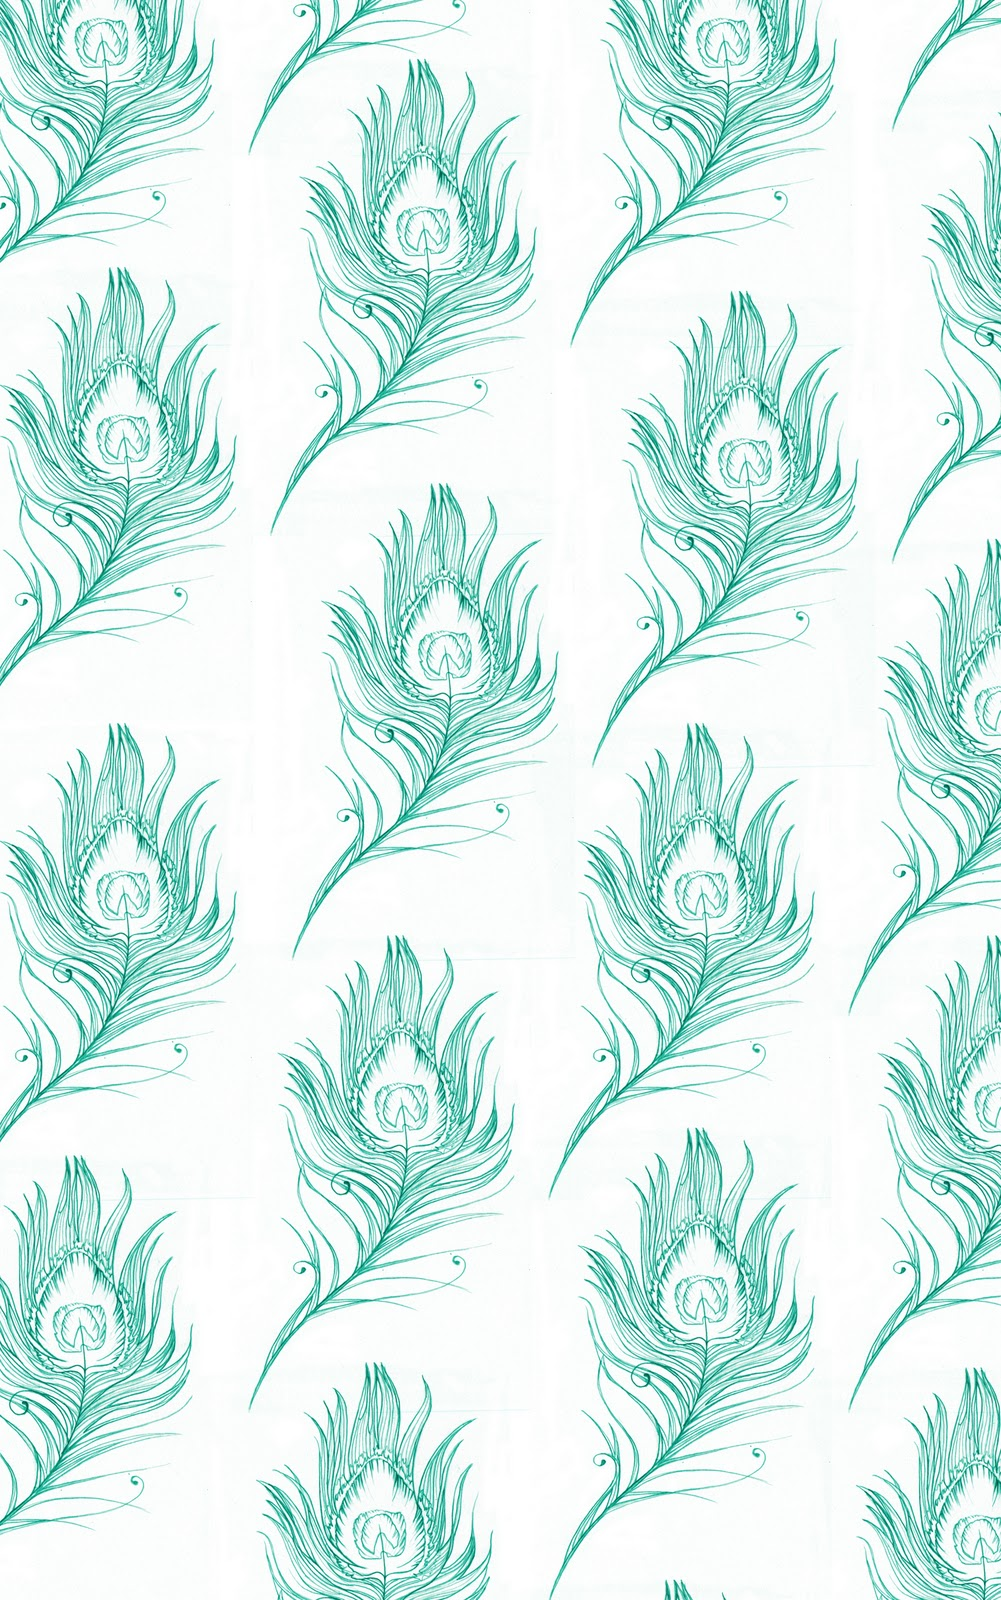 amy holliday illustration peacock feather design